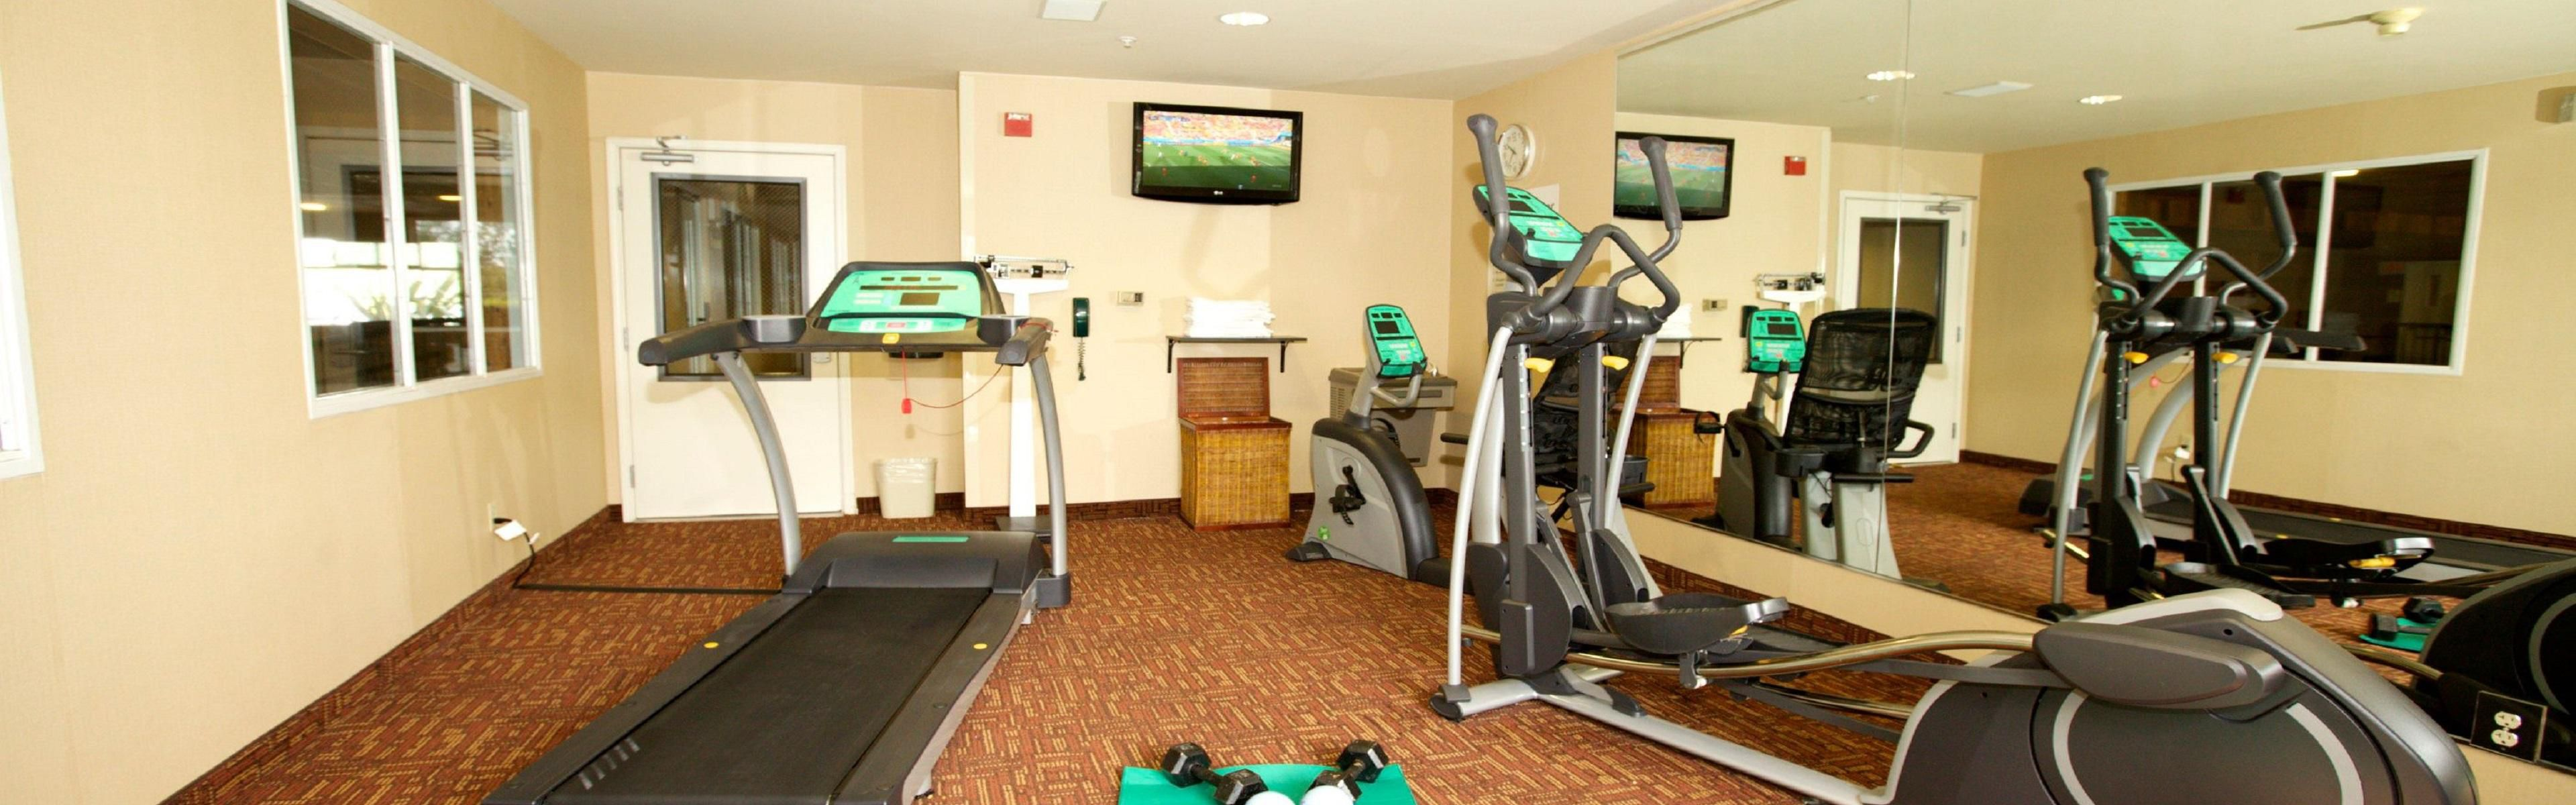 Holiday Inn Express & Suites Watsonville image 2